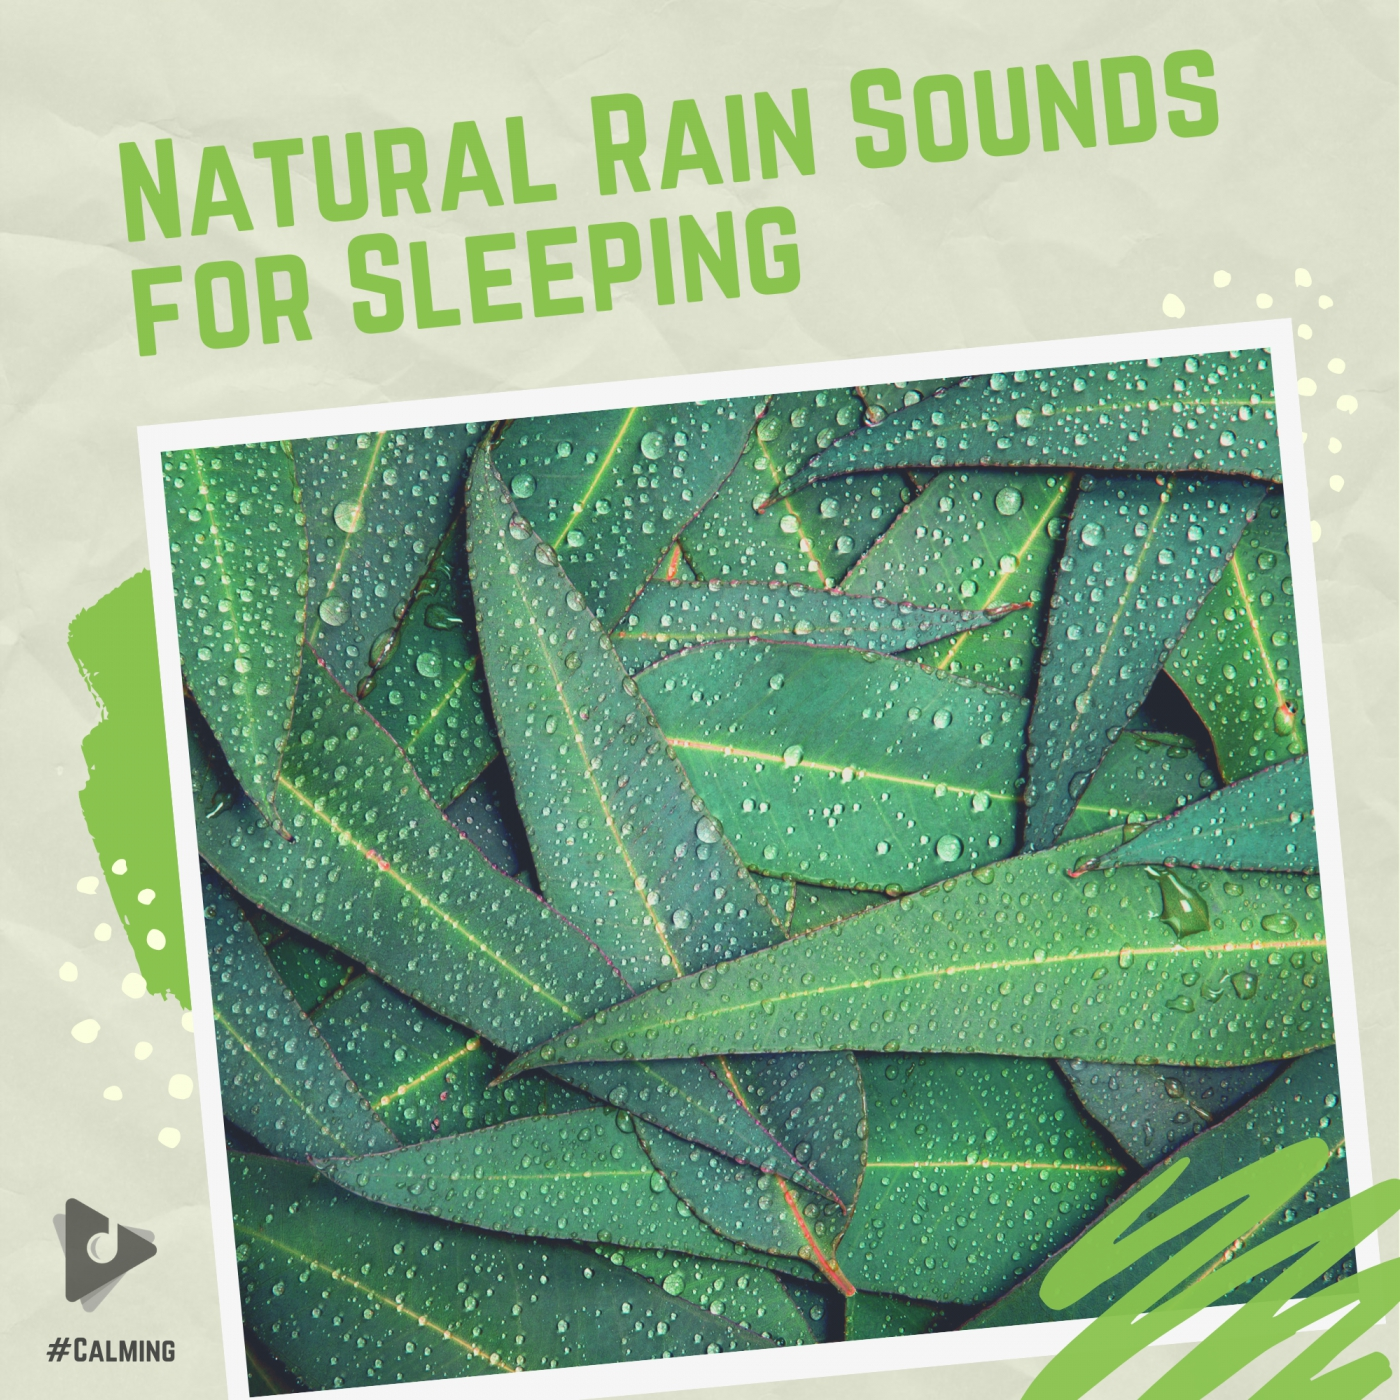 Natural Rain Sounds for Sleeping